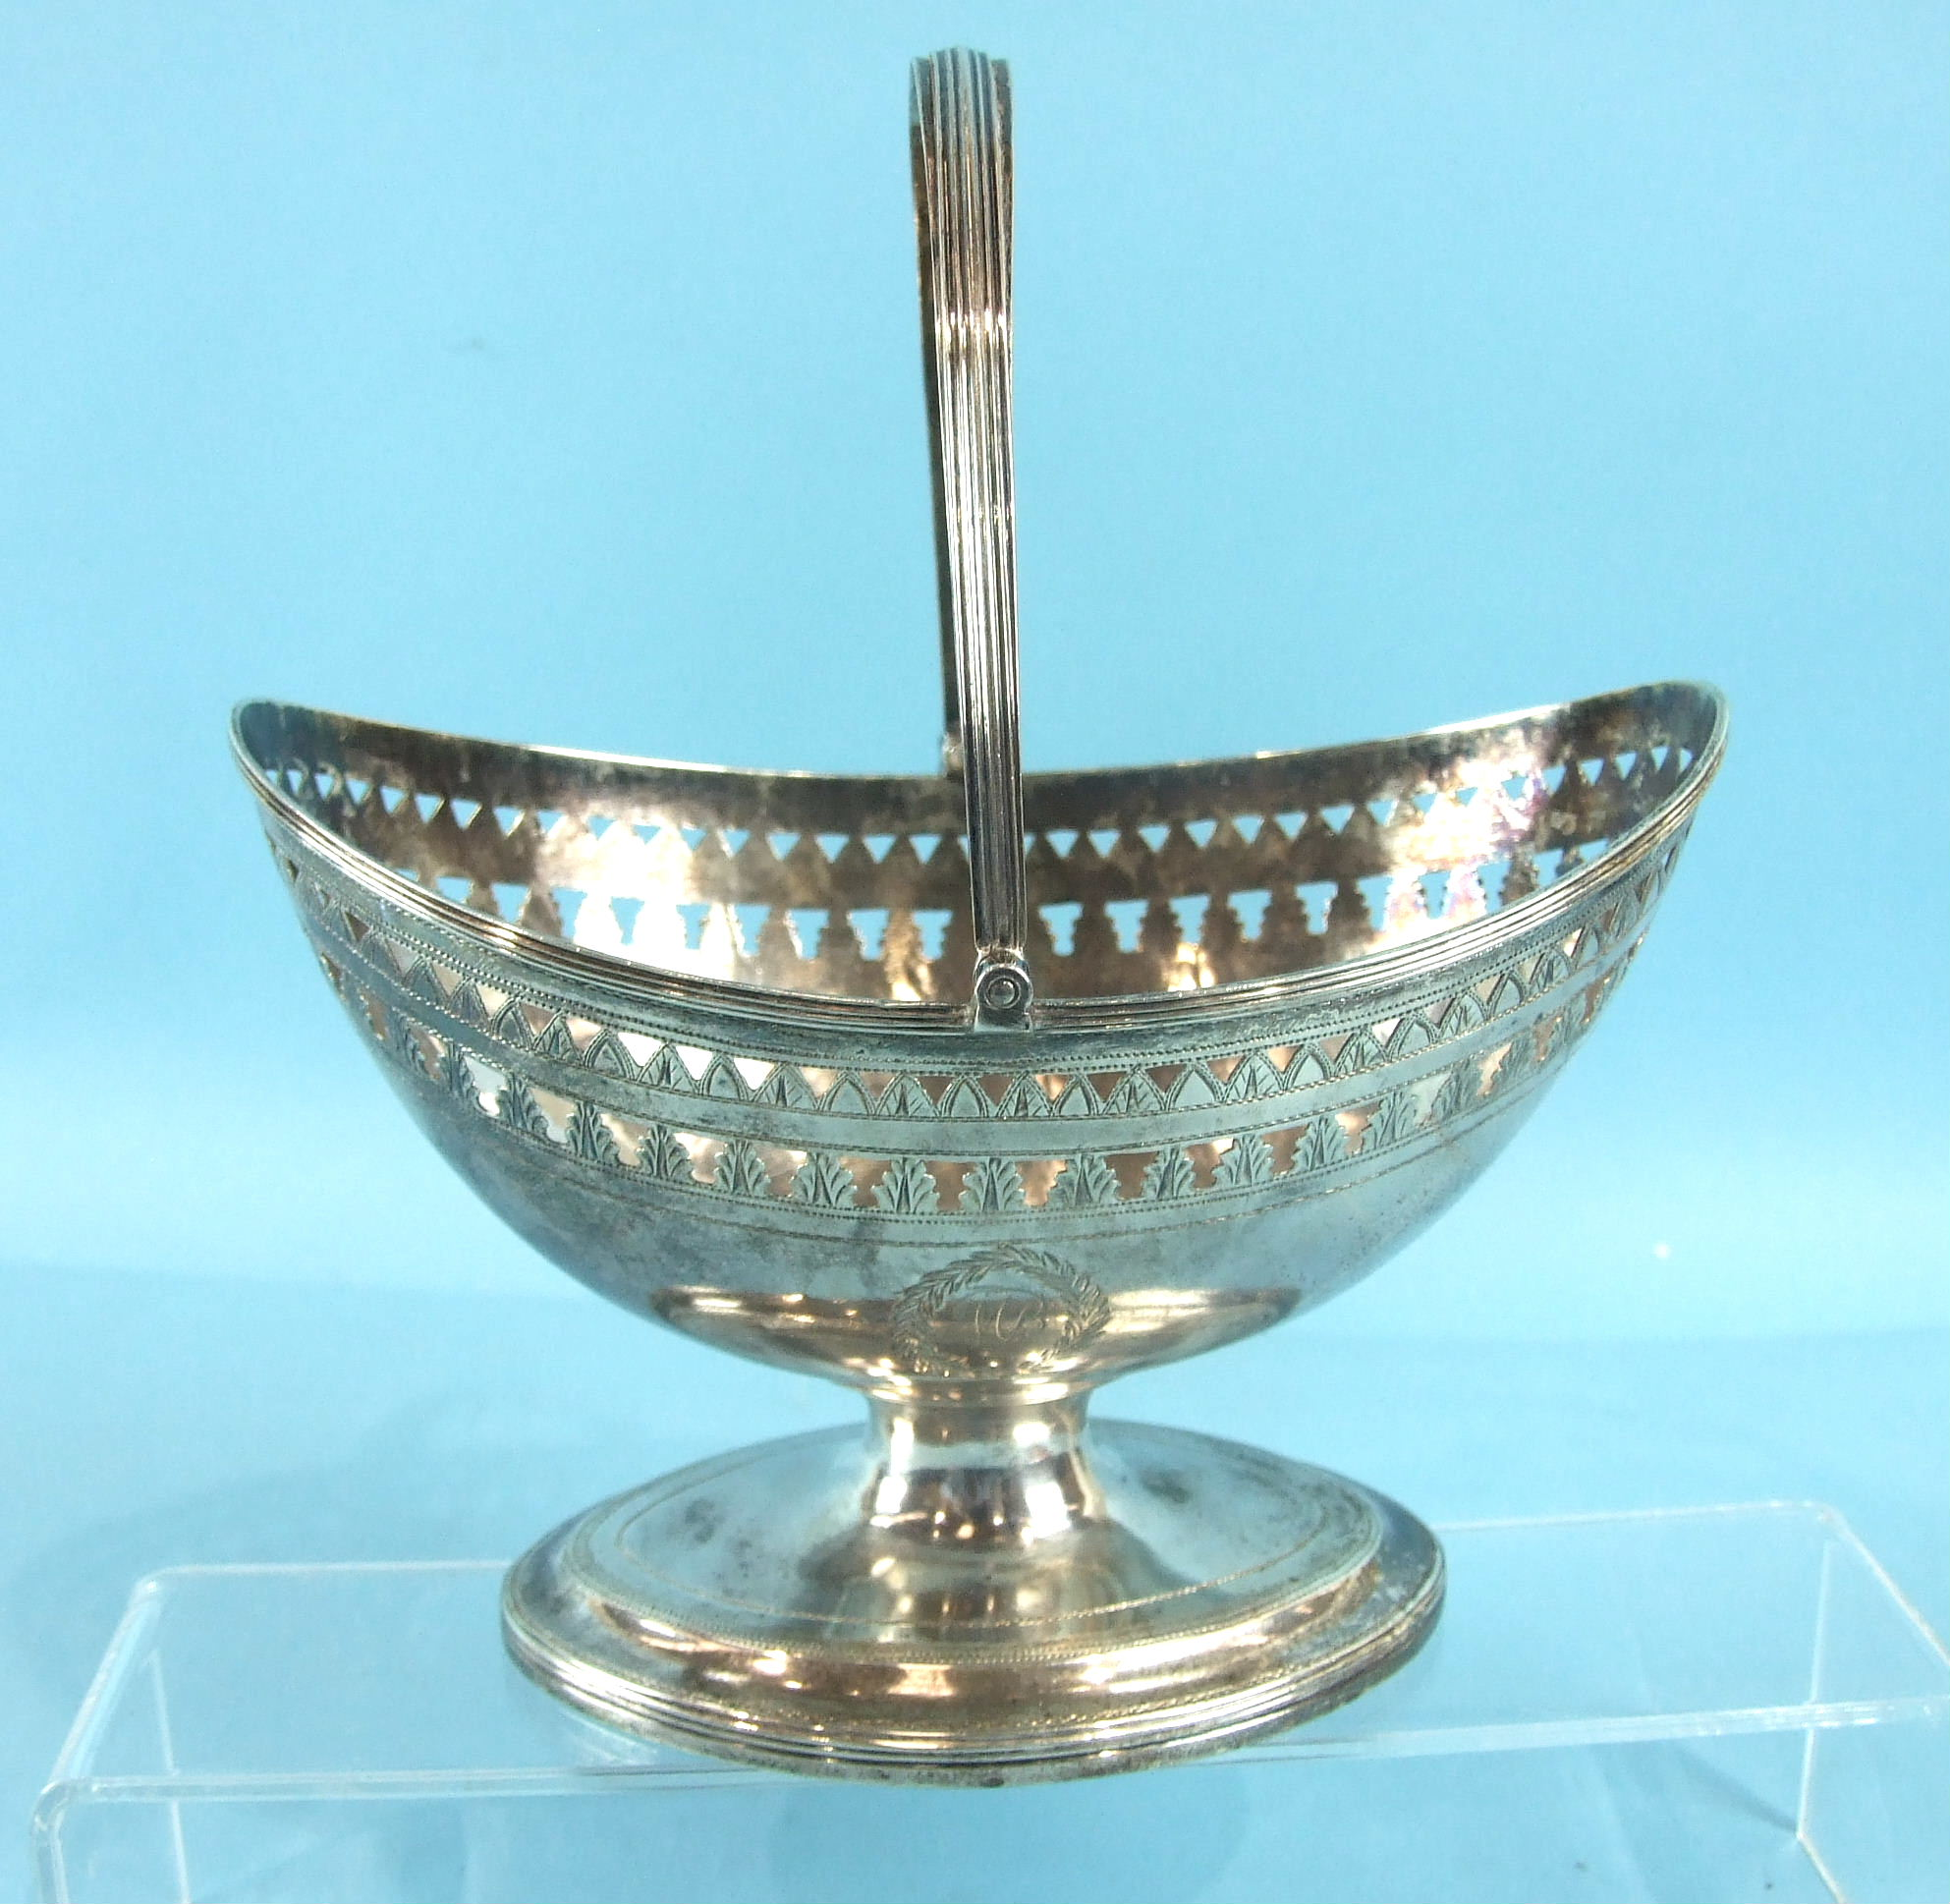 Lot 331 - A George III Newcastle boat-shaped sugar basin with reeded swing handle and borders, the body having